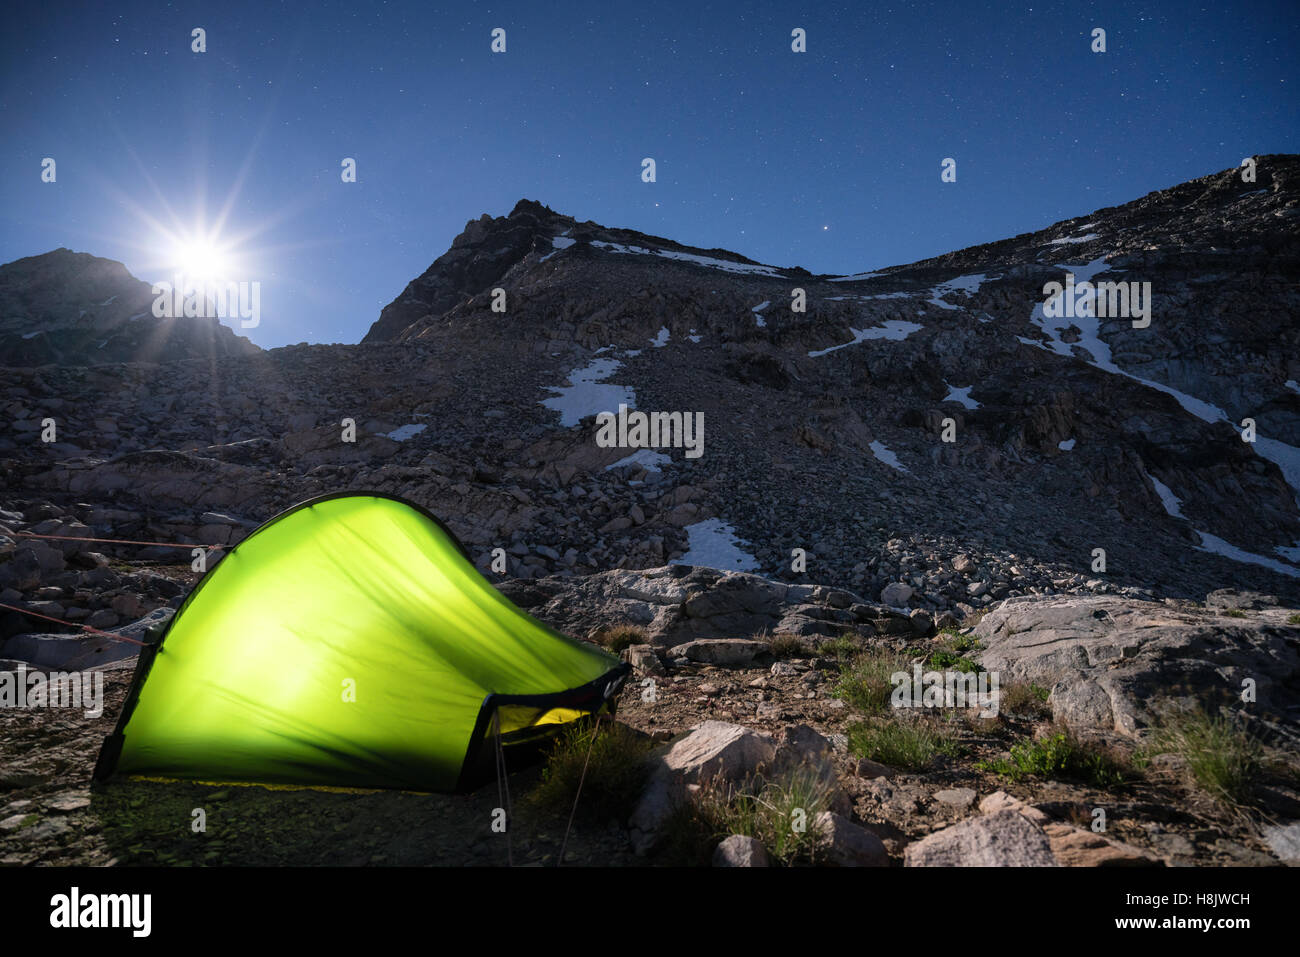 Camping under Glen Pass, Kings Canyon National Park, Sierra Nevada mountains, California, United States of America - Stock Image